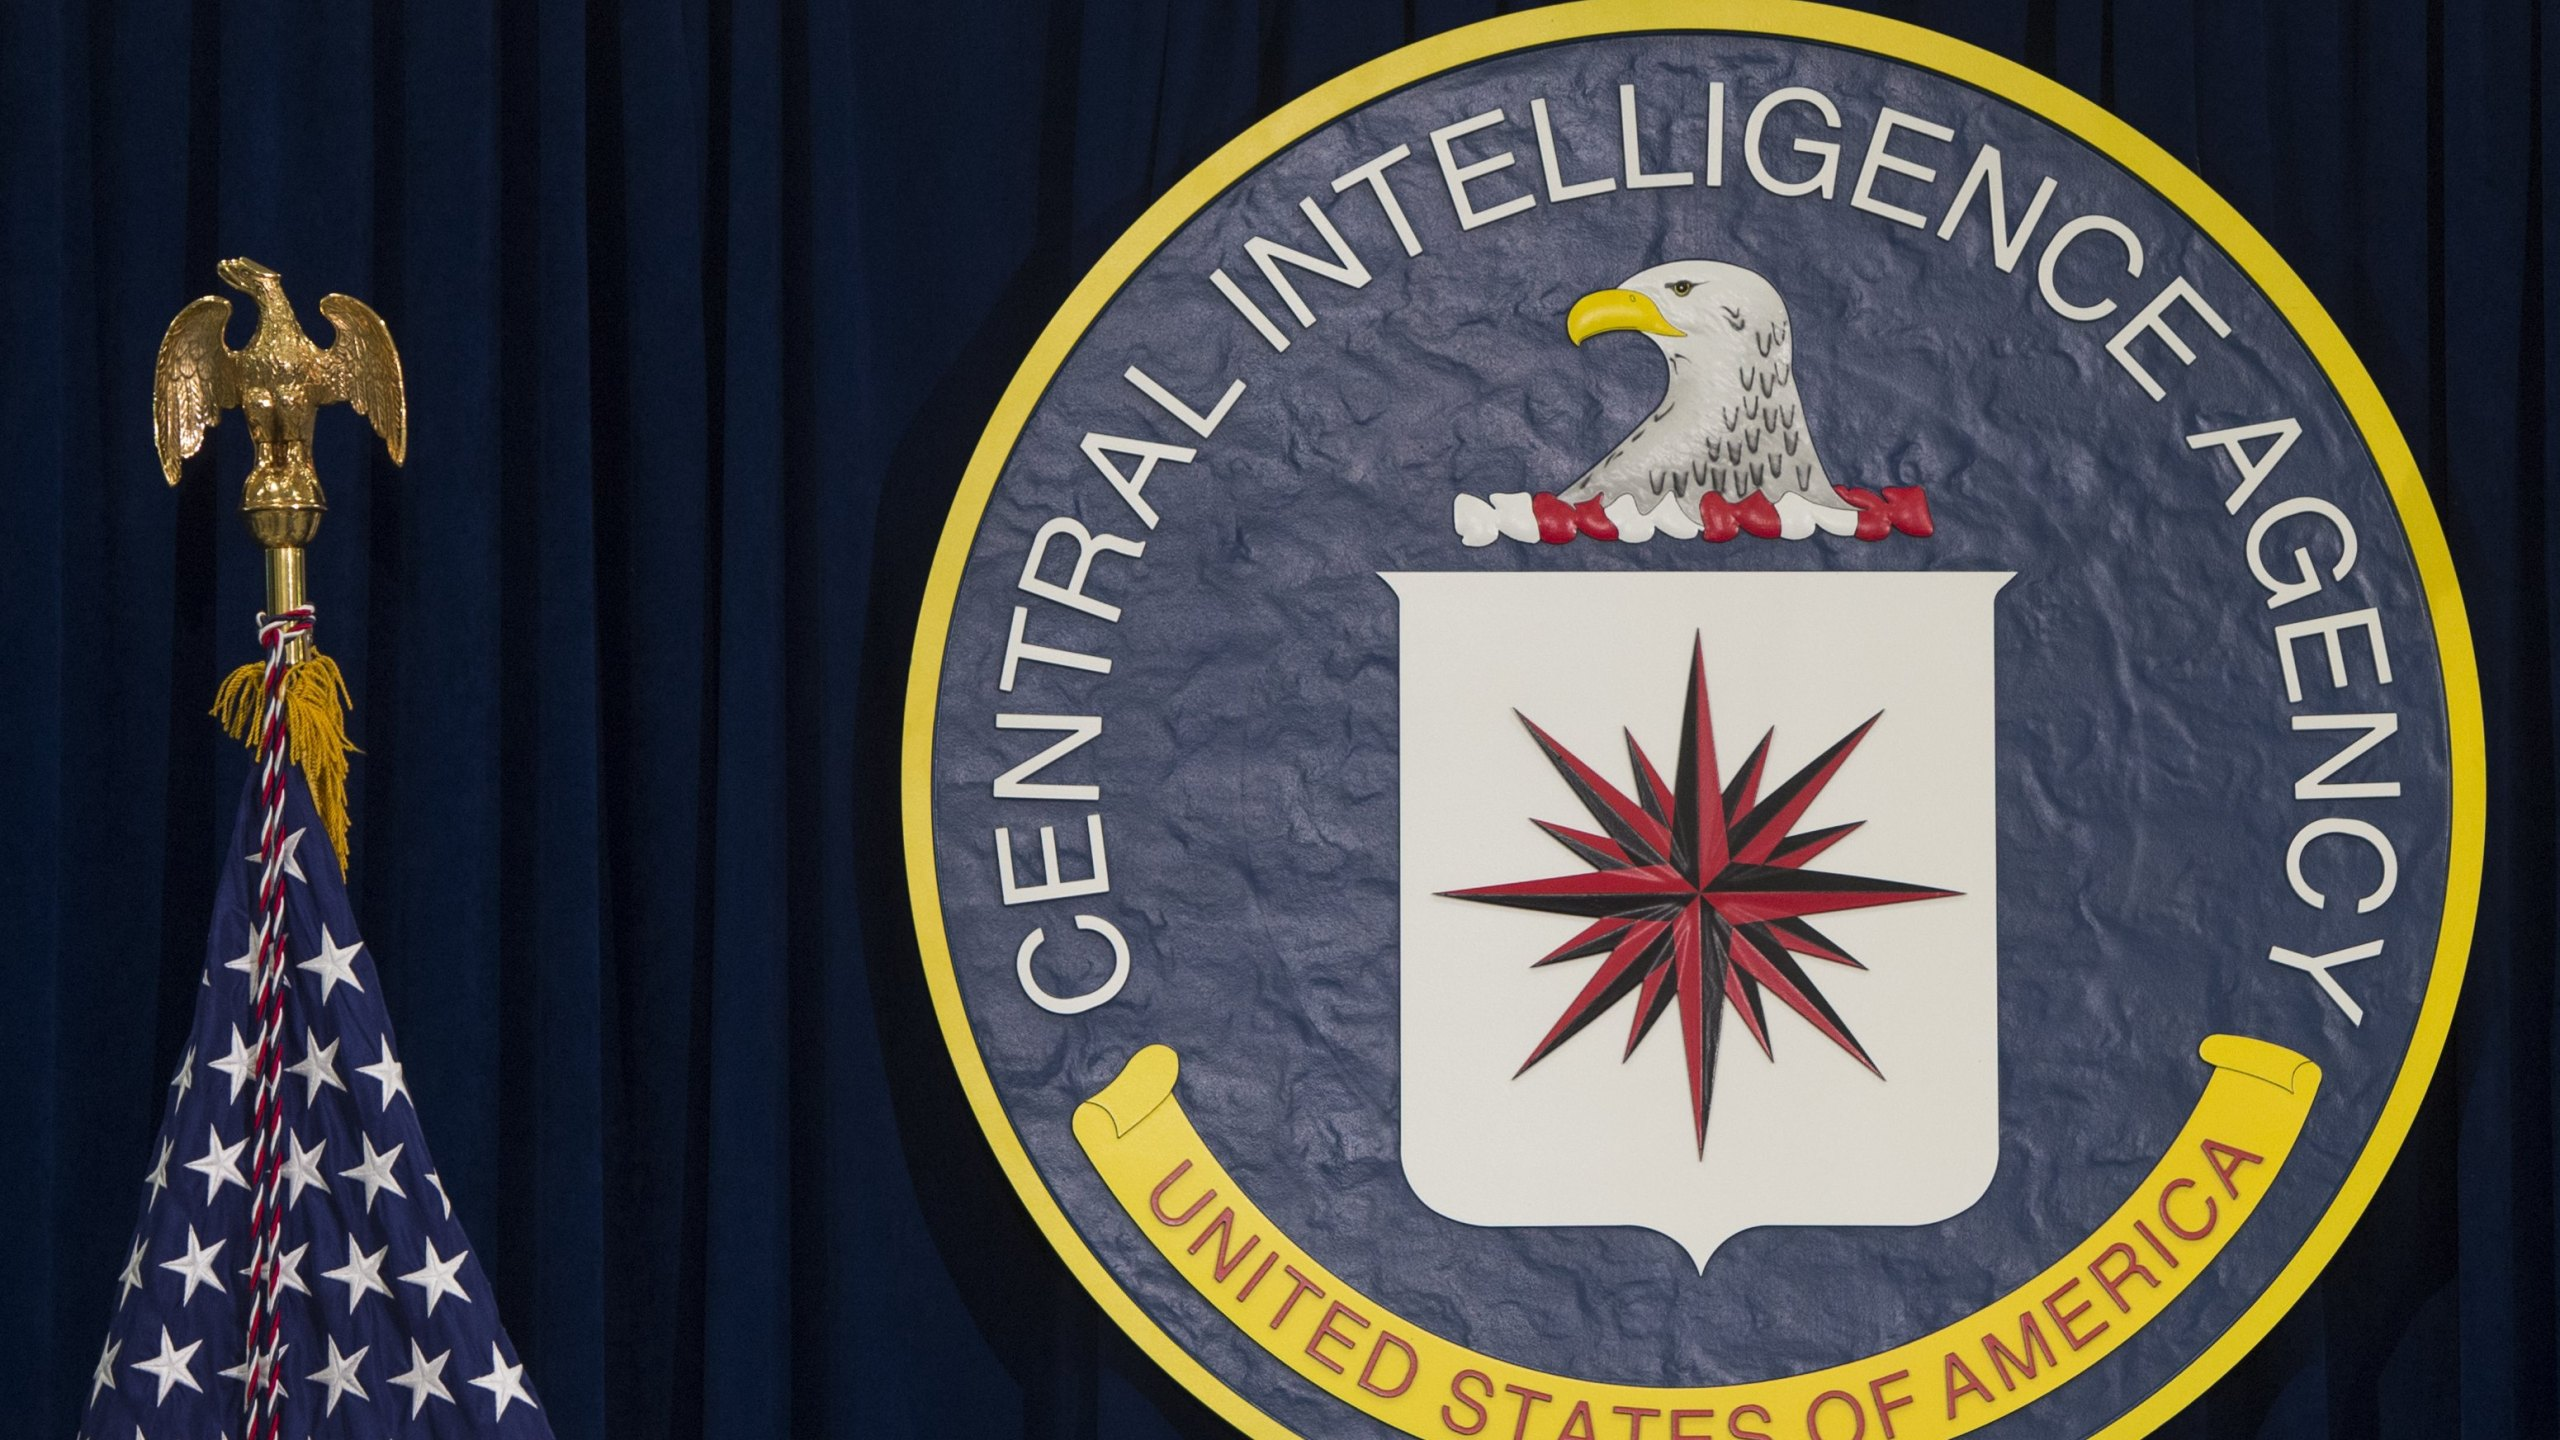 The seal of the Central Intelligence Agency is seen at CIA Headquarters in Langley, Virginia, on April 13, 2016. (SAUL LOEB/AFP via Getty Images)